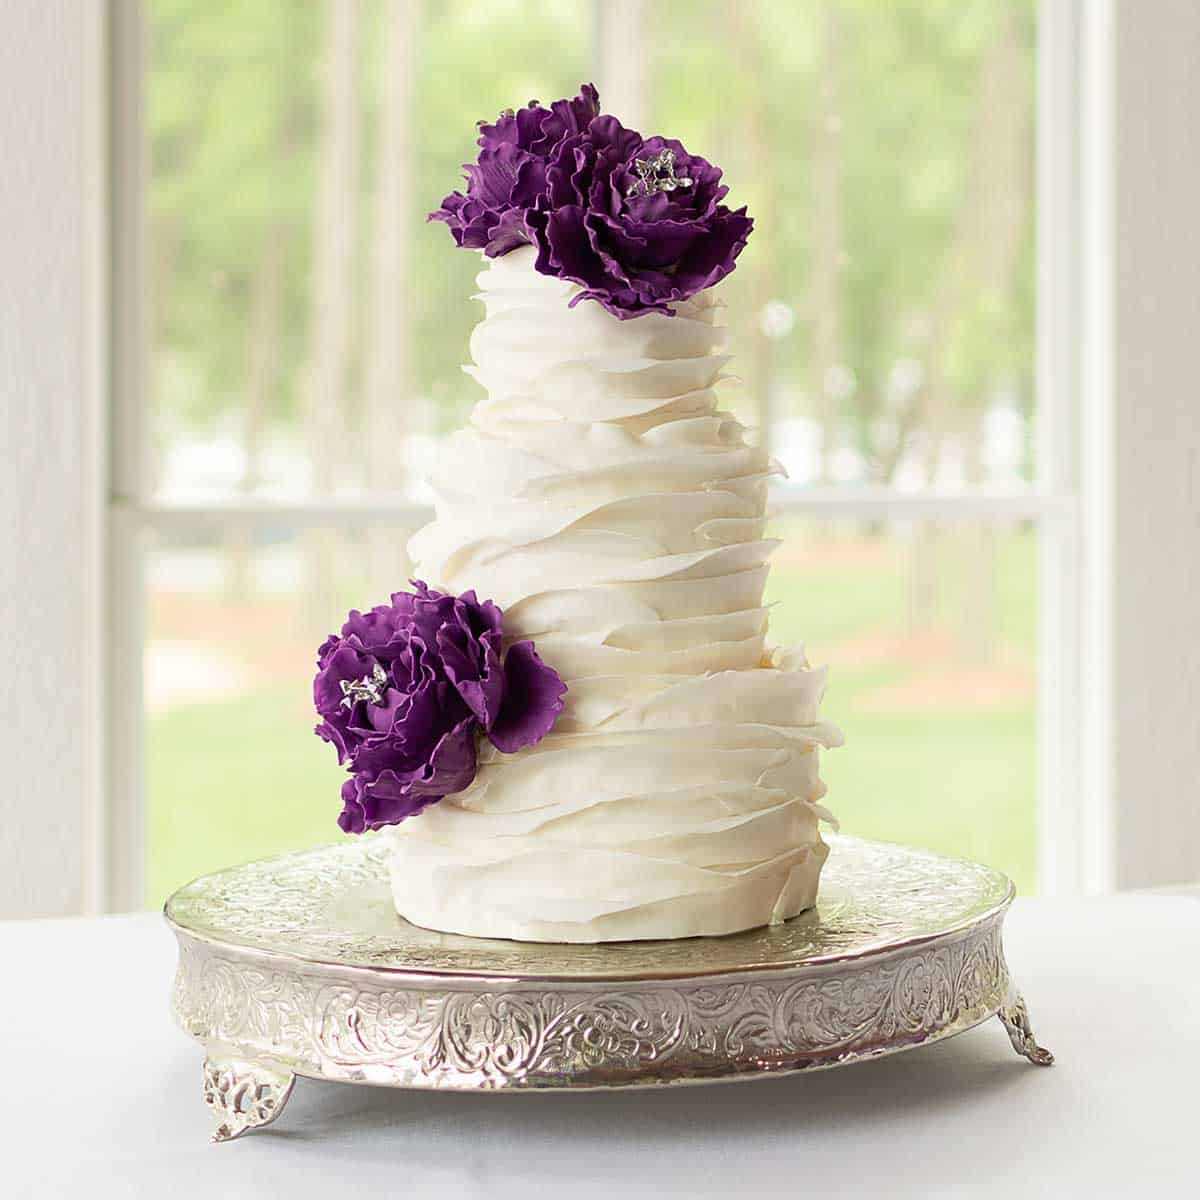 3 tier White Wedding Cake with Sugar Peonies